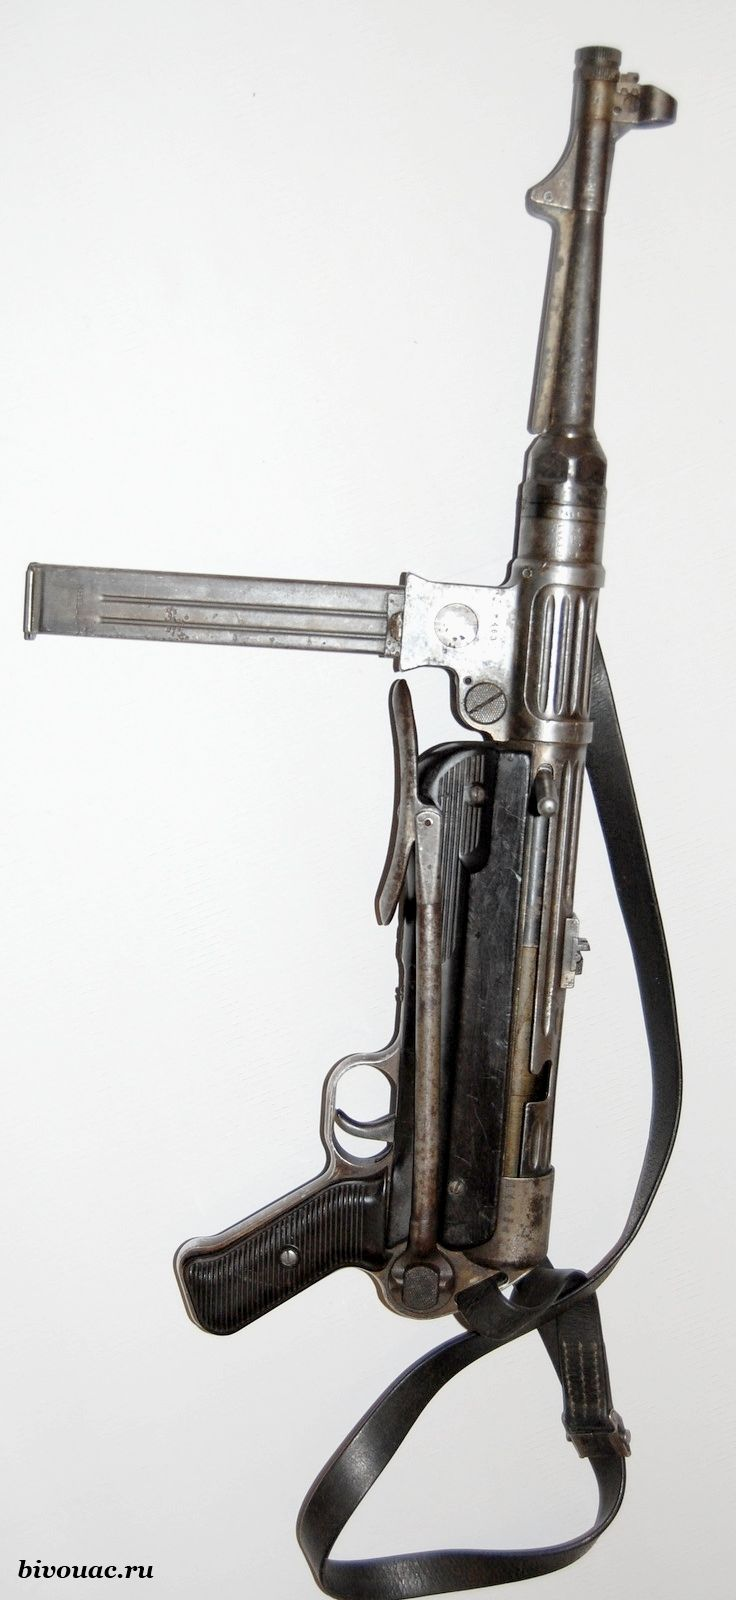 422 Best Defense Images On Pinterest Revolvers Firearms And Hand Guns Exploded View Of The Taurus Pt92 Af Also Sig 1911 Diagram Ww2 Weapons Vietnam War Submachine Gun Rifles Wwii Arms German Military World Ii